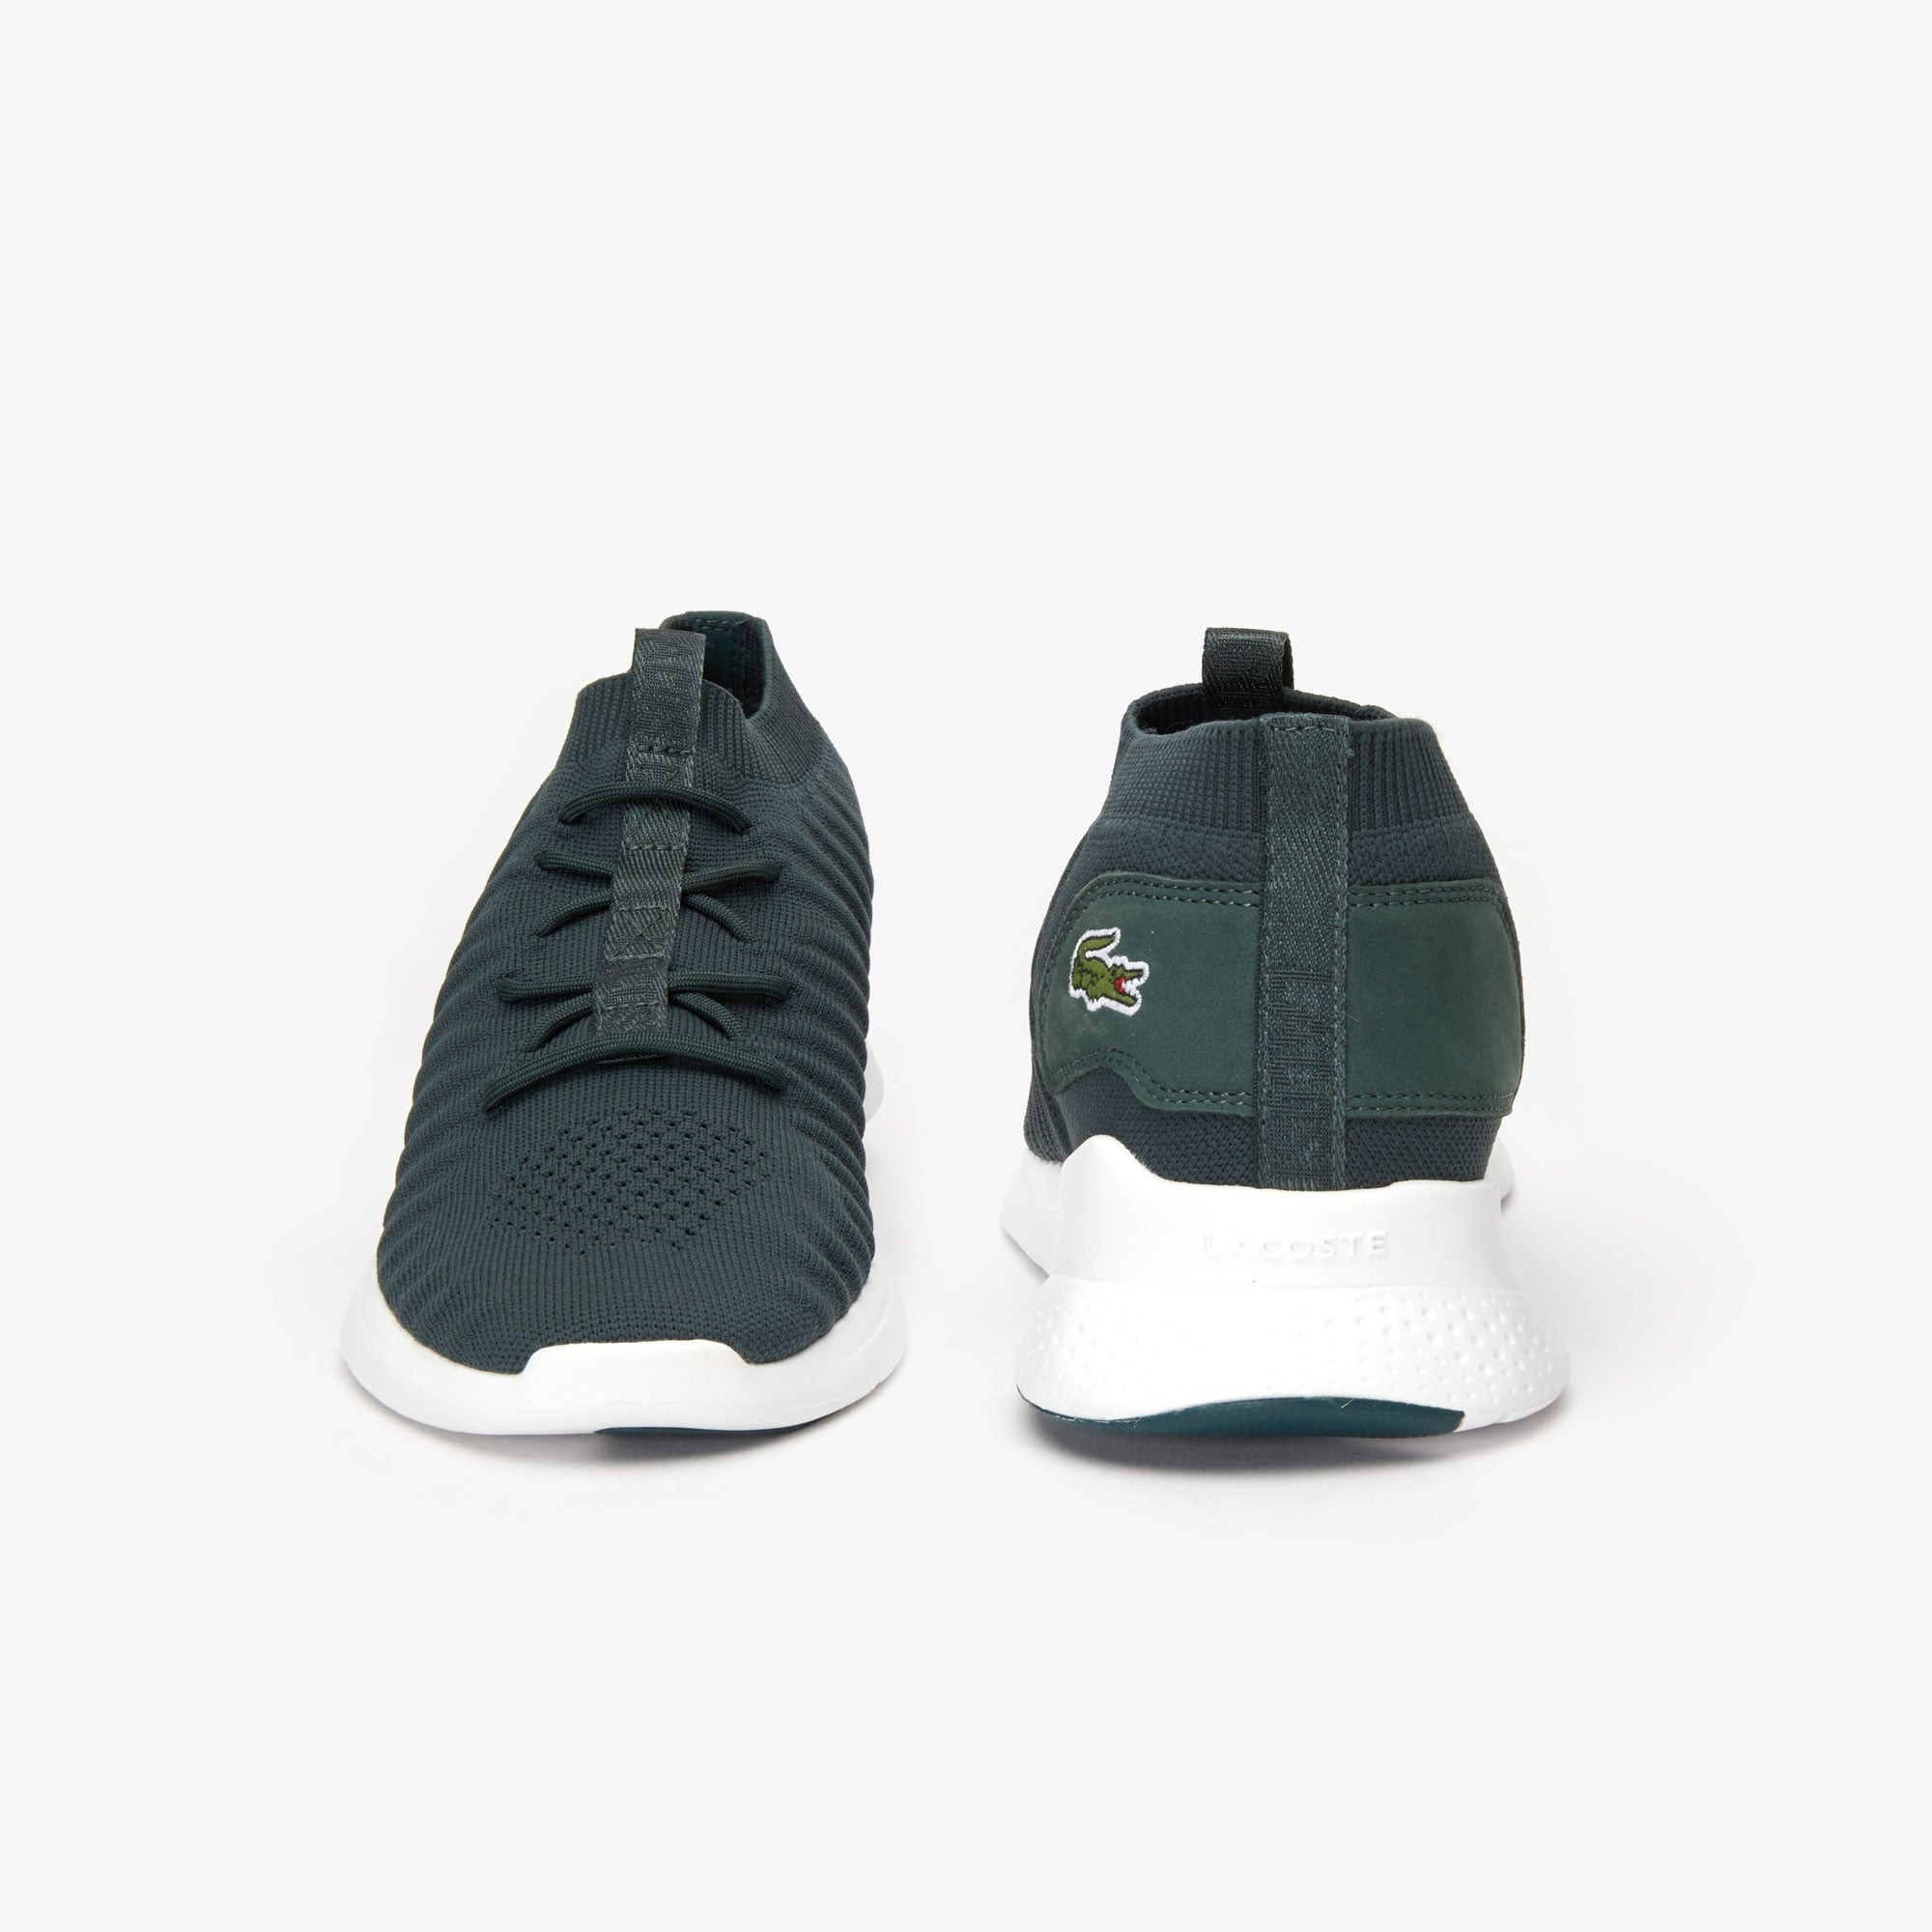 Men's LT Fit-Flex Textile Trainers